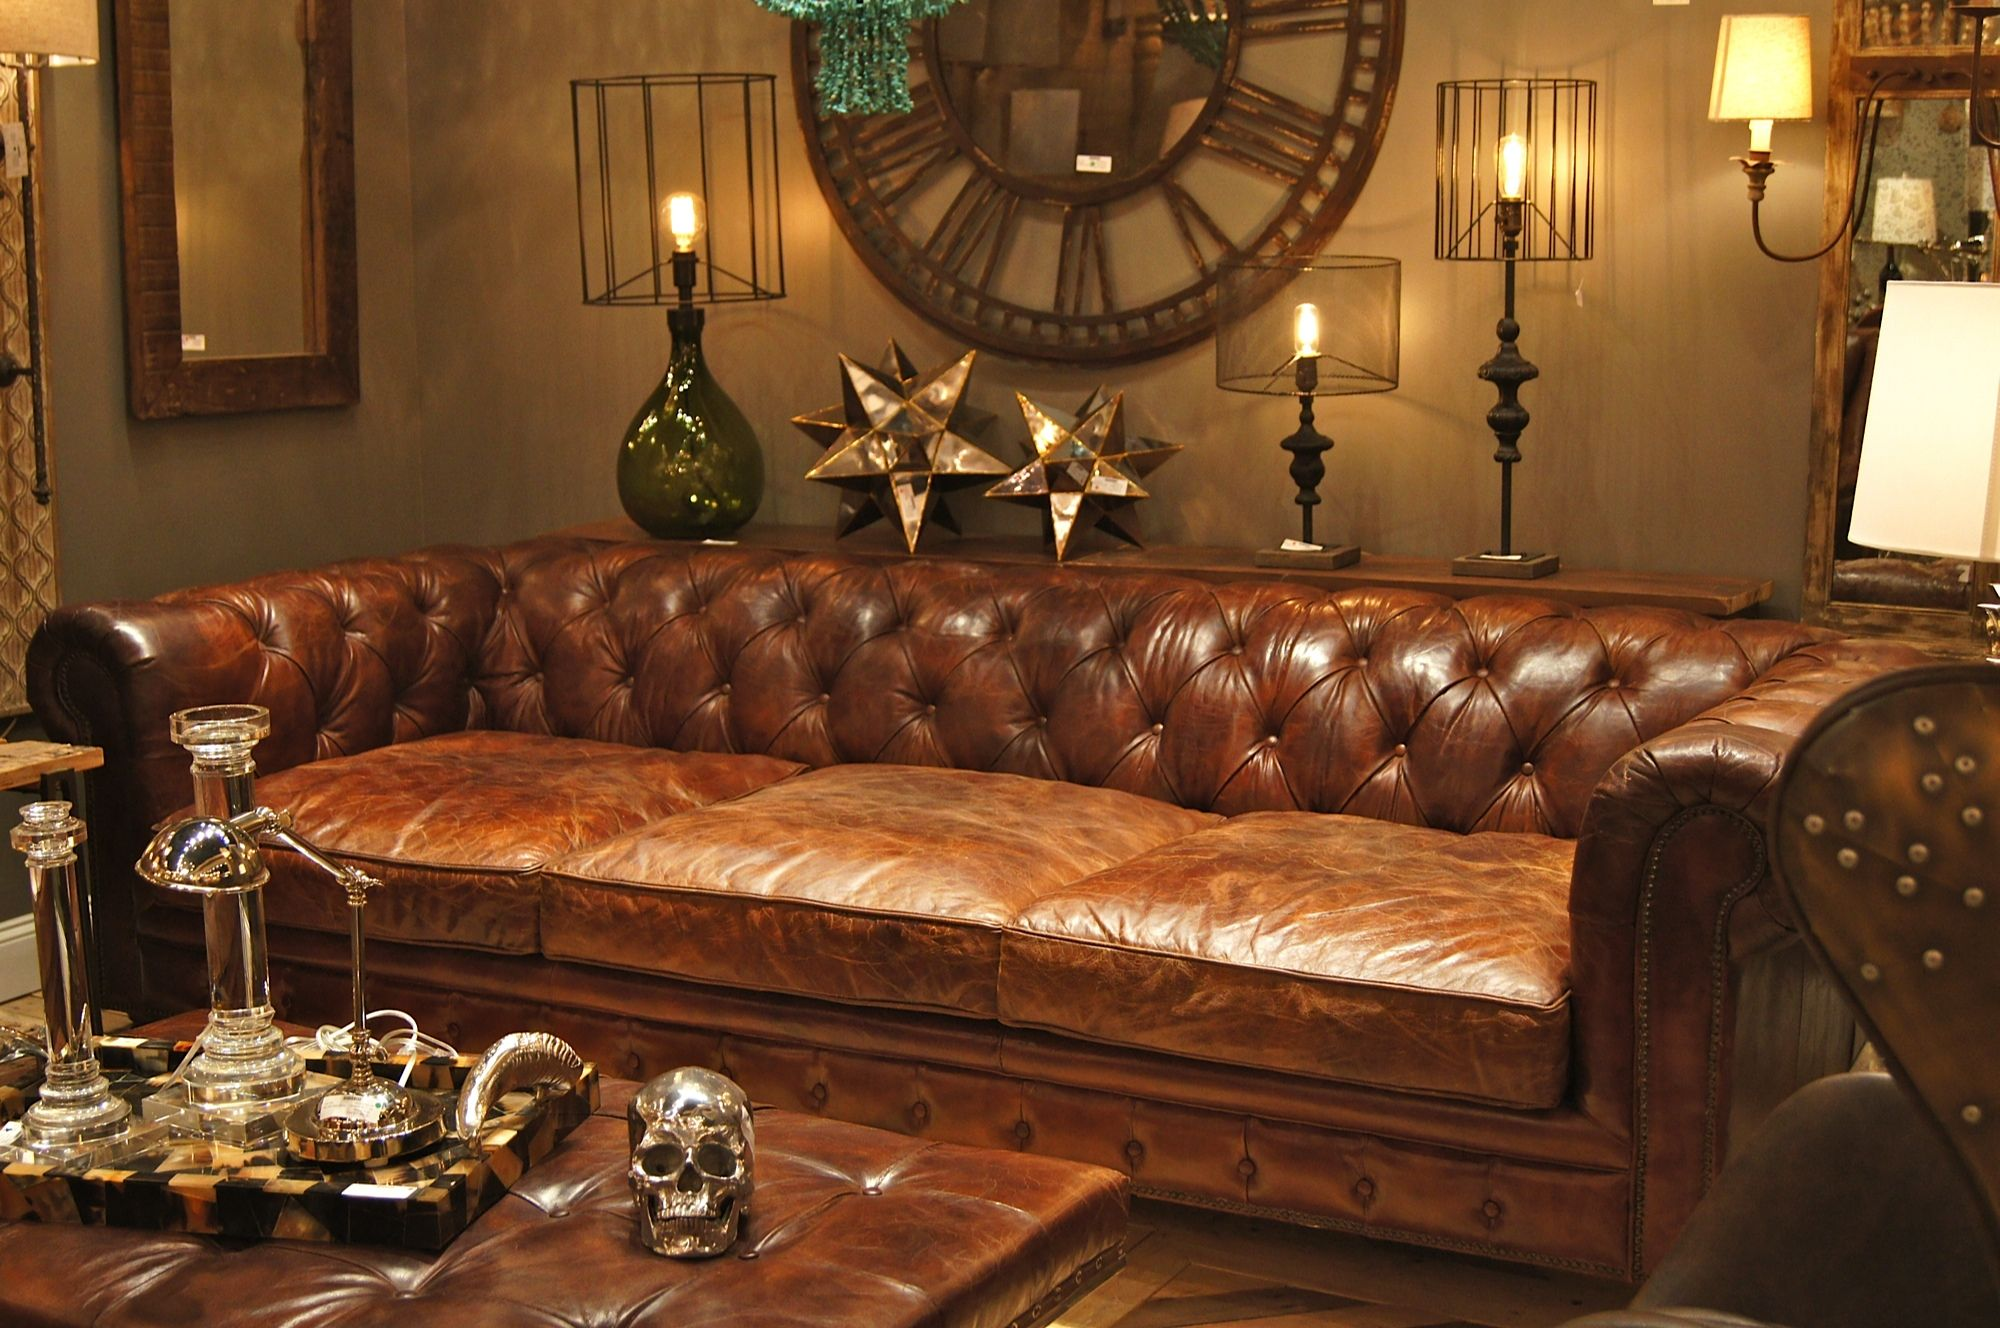 reinvents the classic chesterfield sofa by making it extra deep